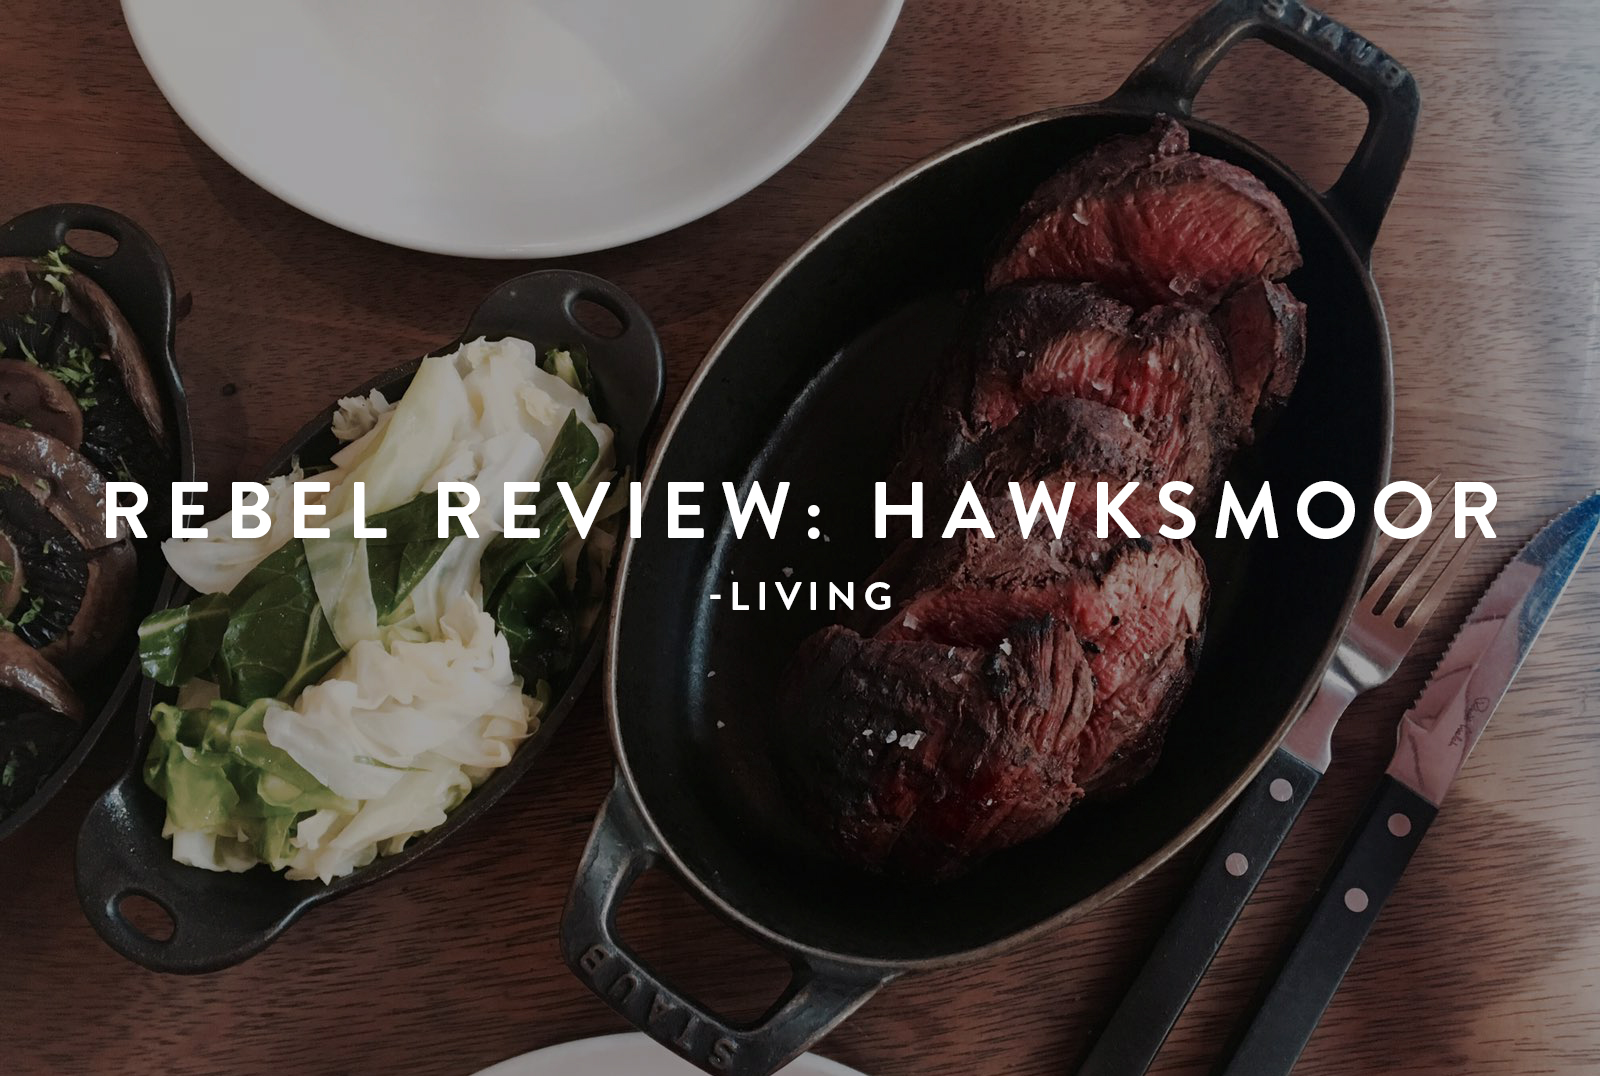 Rebel Review Hawksmoor